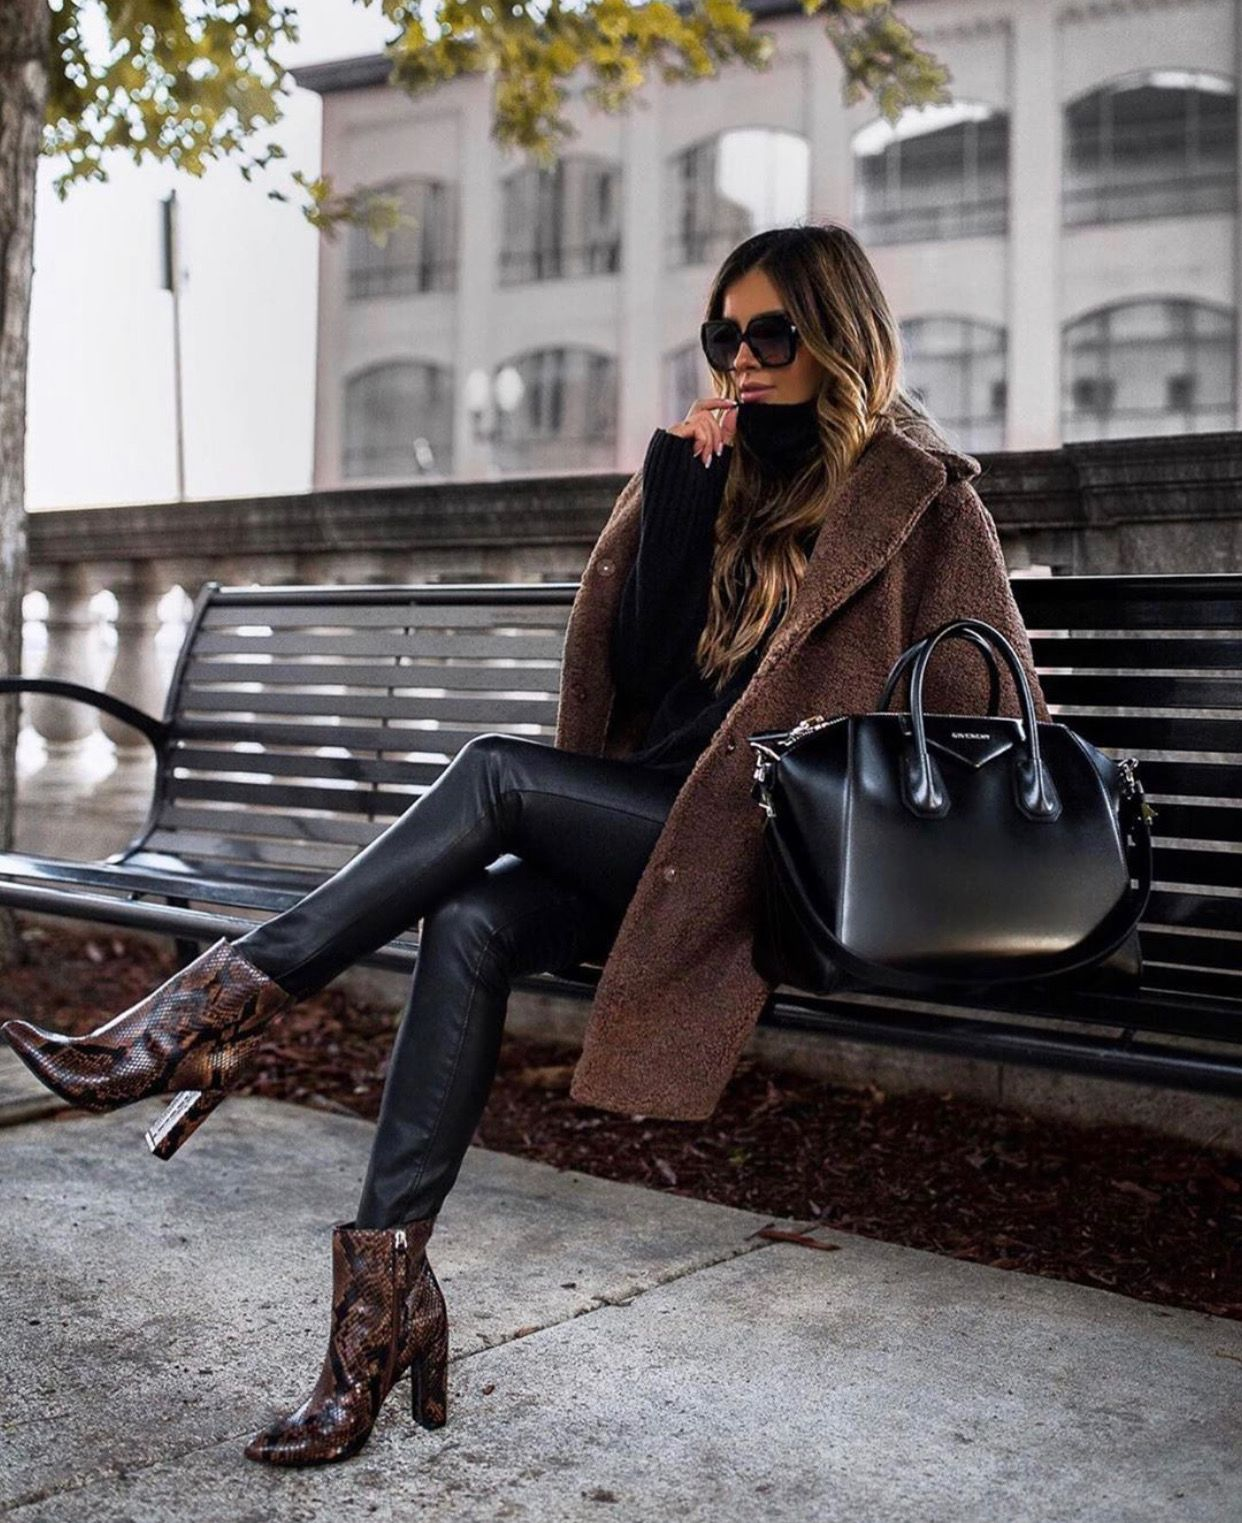 Pin on Fall/Winter Fashion & Outfit Inspo